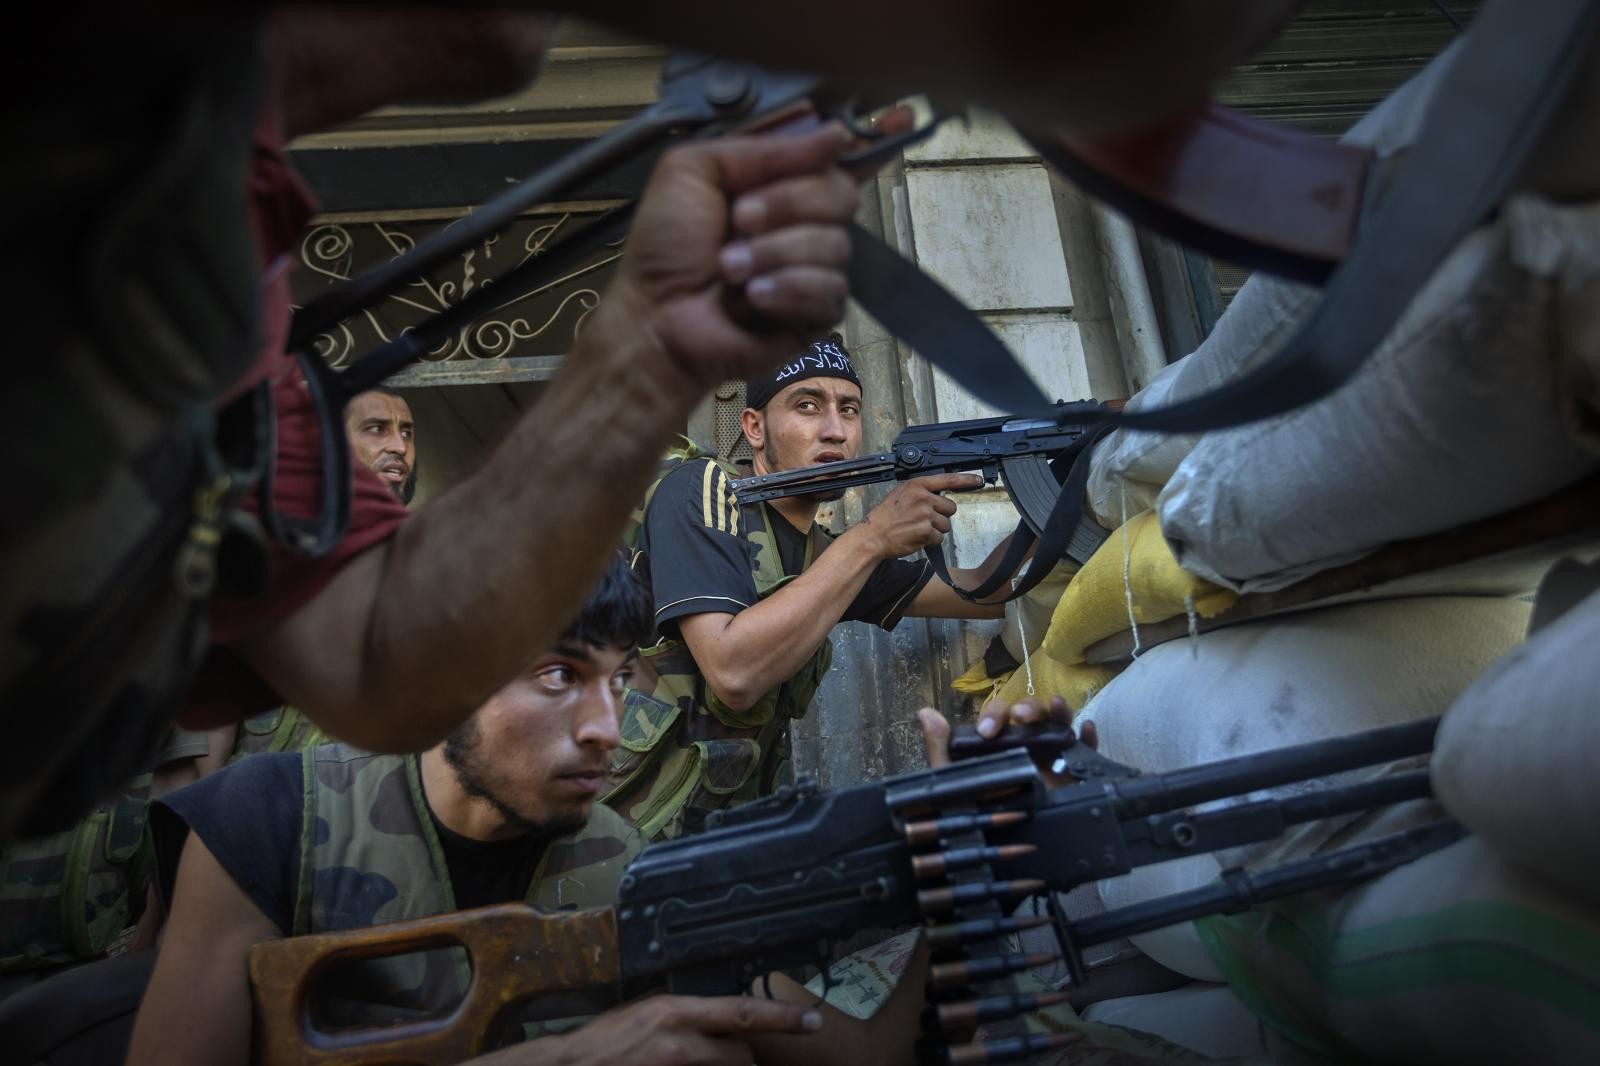 Free Syrian Army (FSA) soldiers engaged in a fierce battle against Assad's troops in Aleppo's Old City (Syria, 2012)